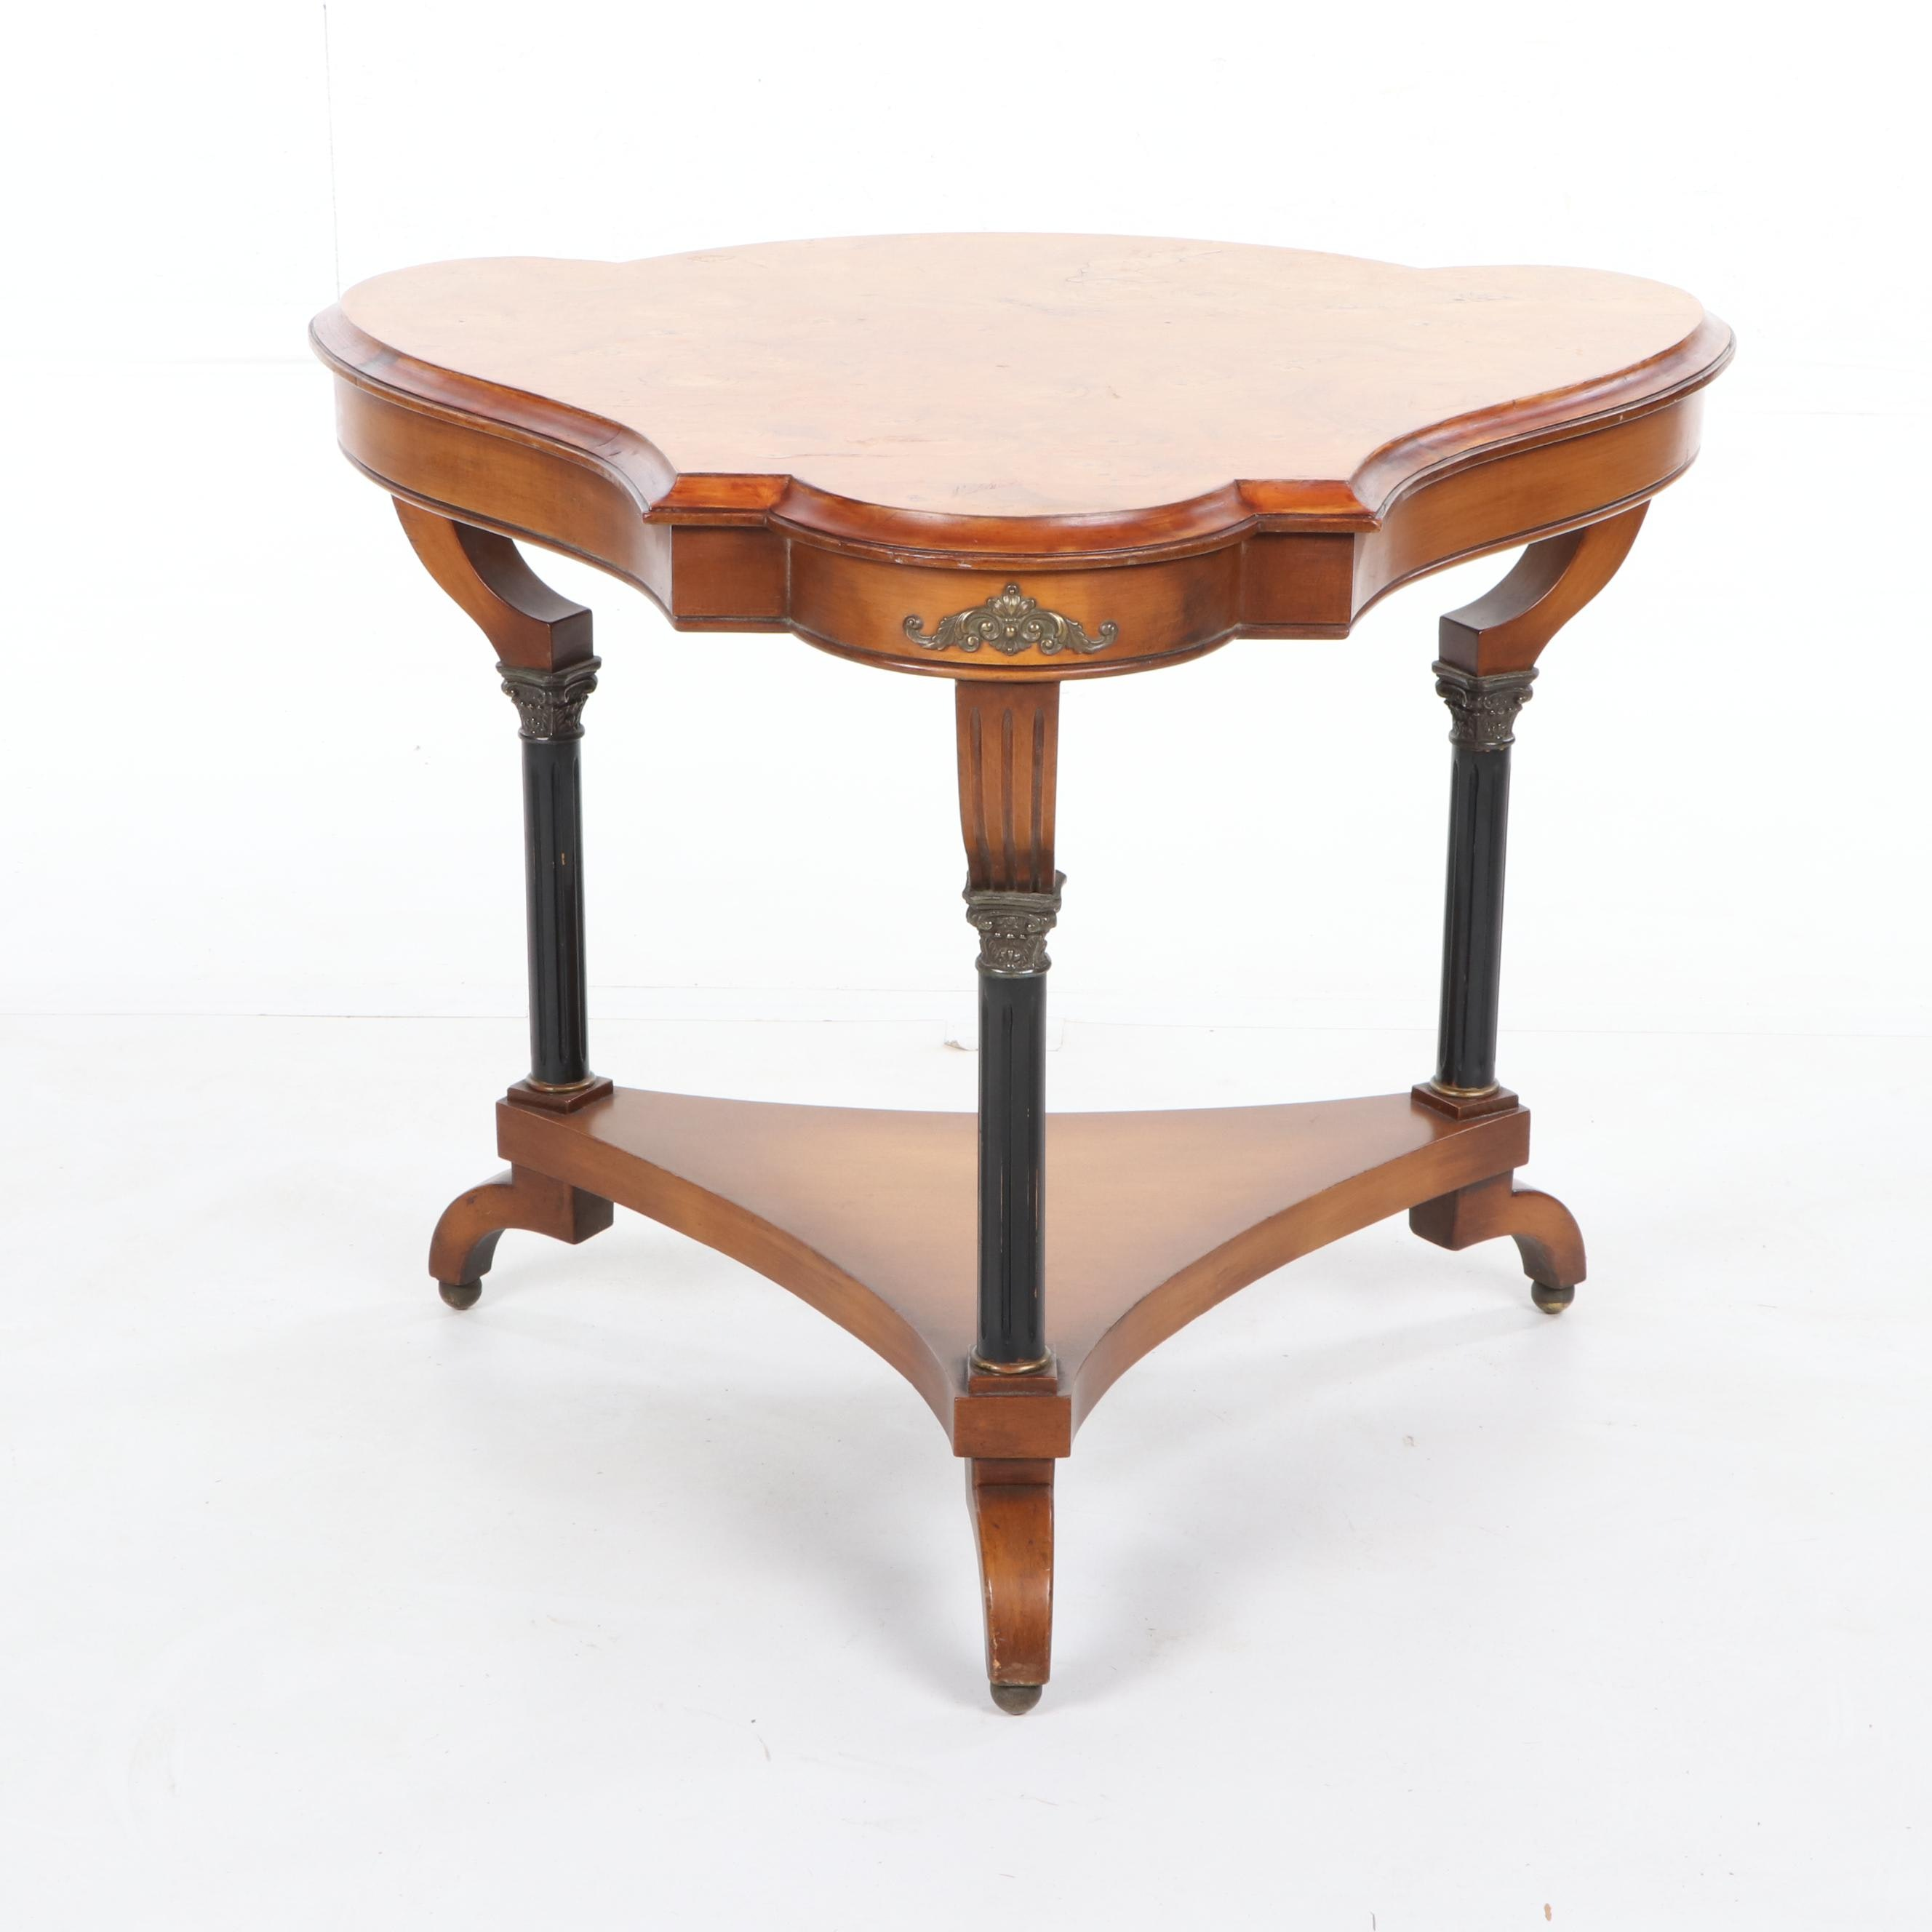 Regency Style Burl Wood Occasional Table, 21st Century